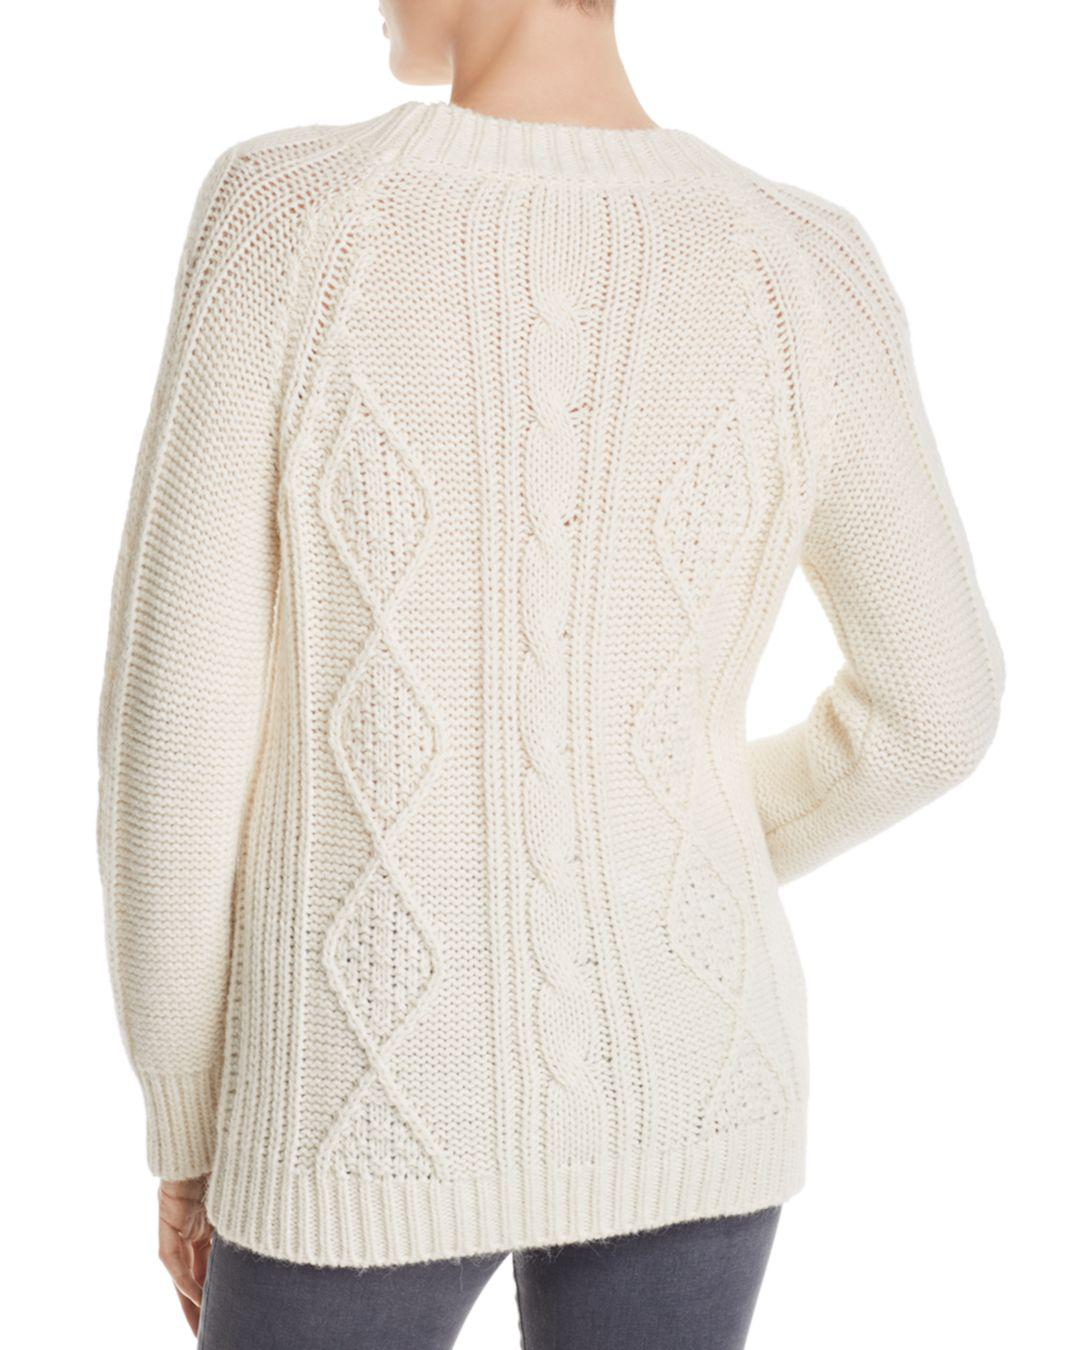 21cc83f0d Lyst - Gerard Darel Marylin Cable-knit Pullover